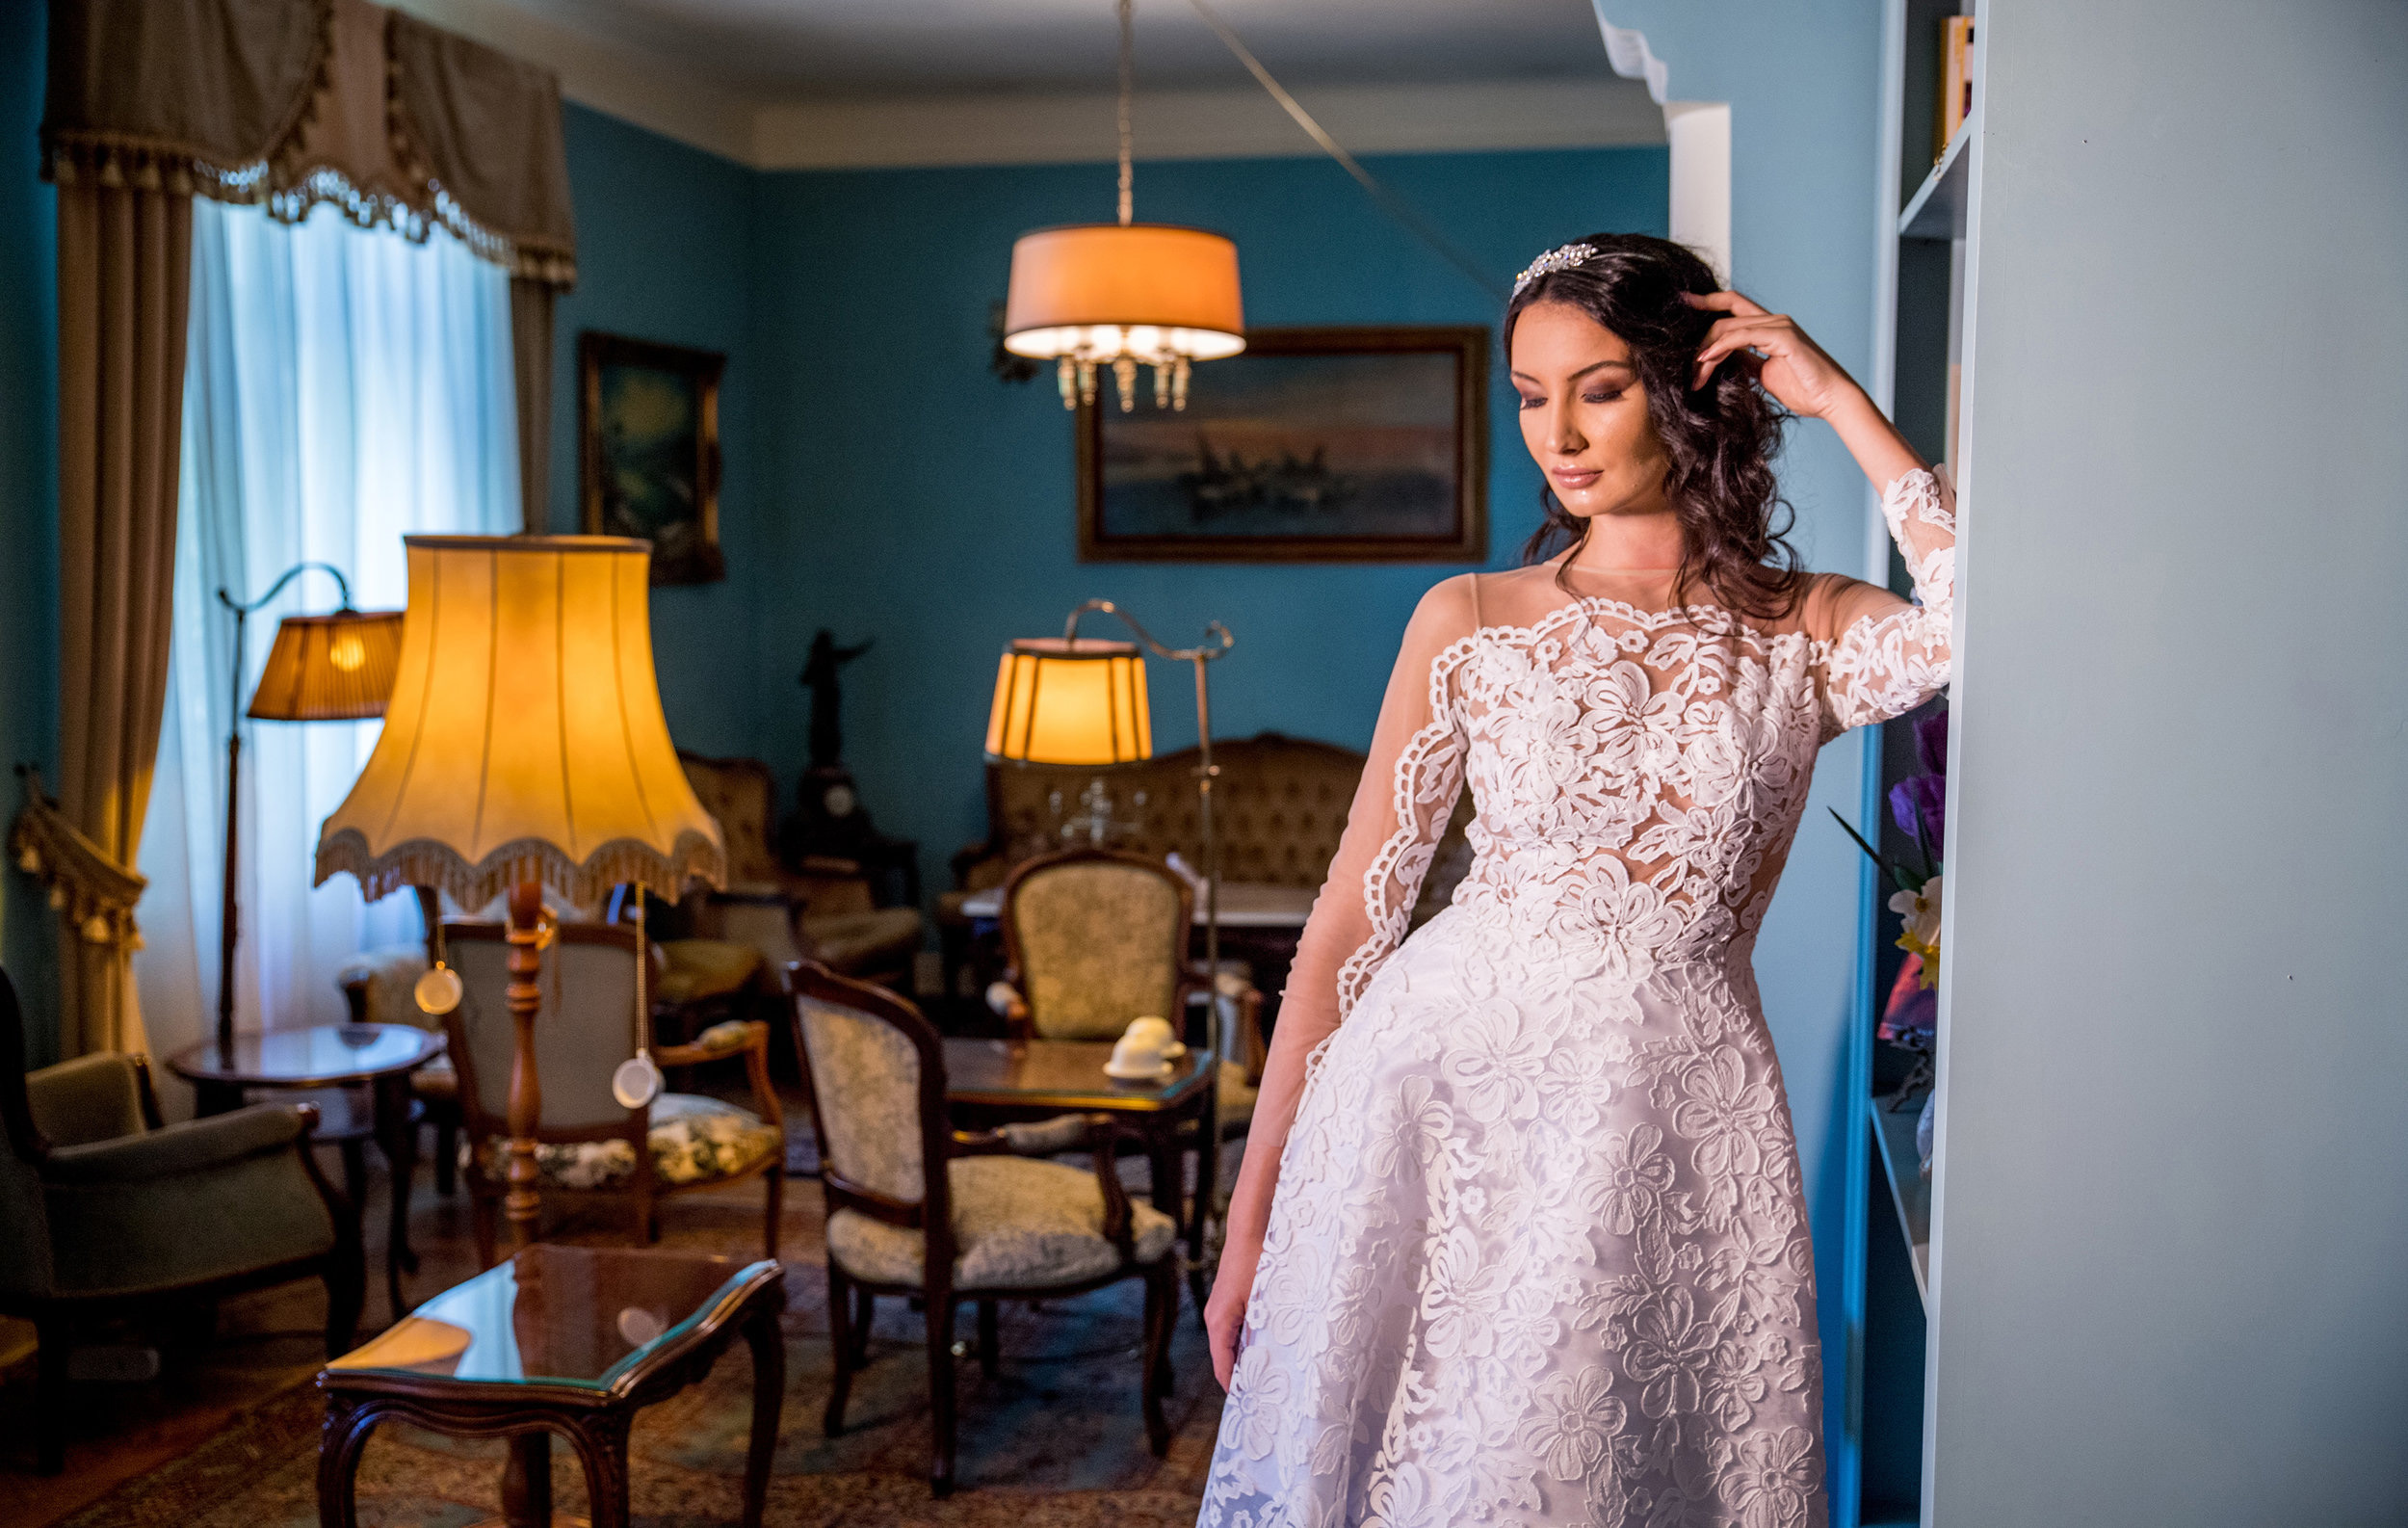 Featured:  Anémone , A-line ivory wedding dress crafted in textured lace